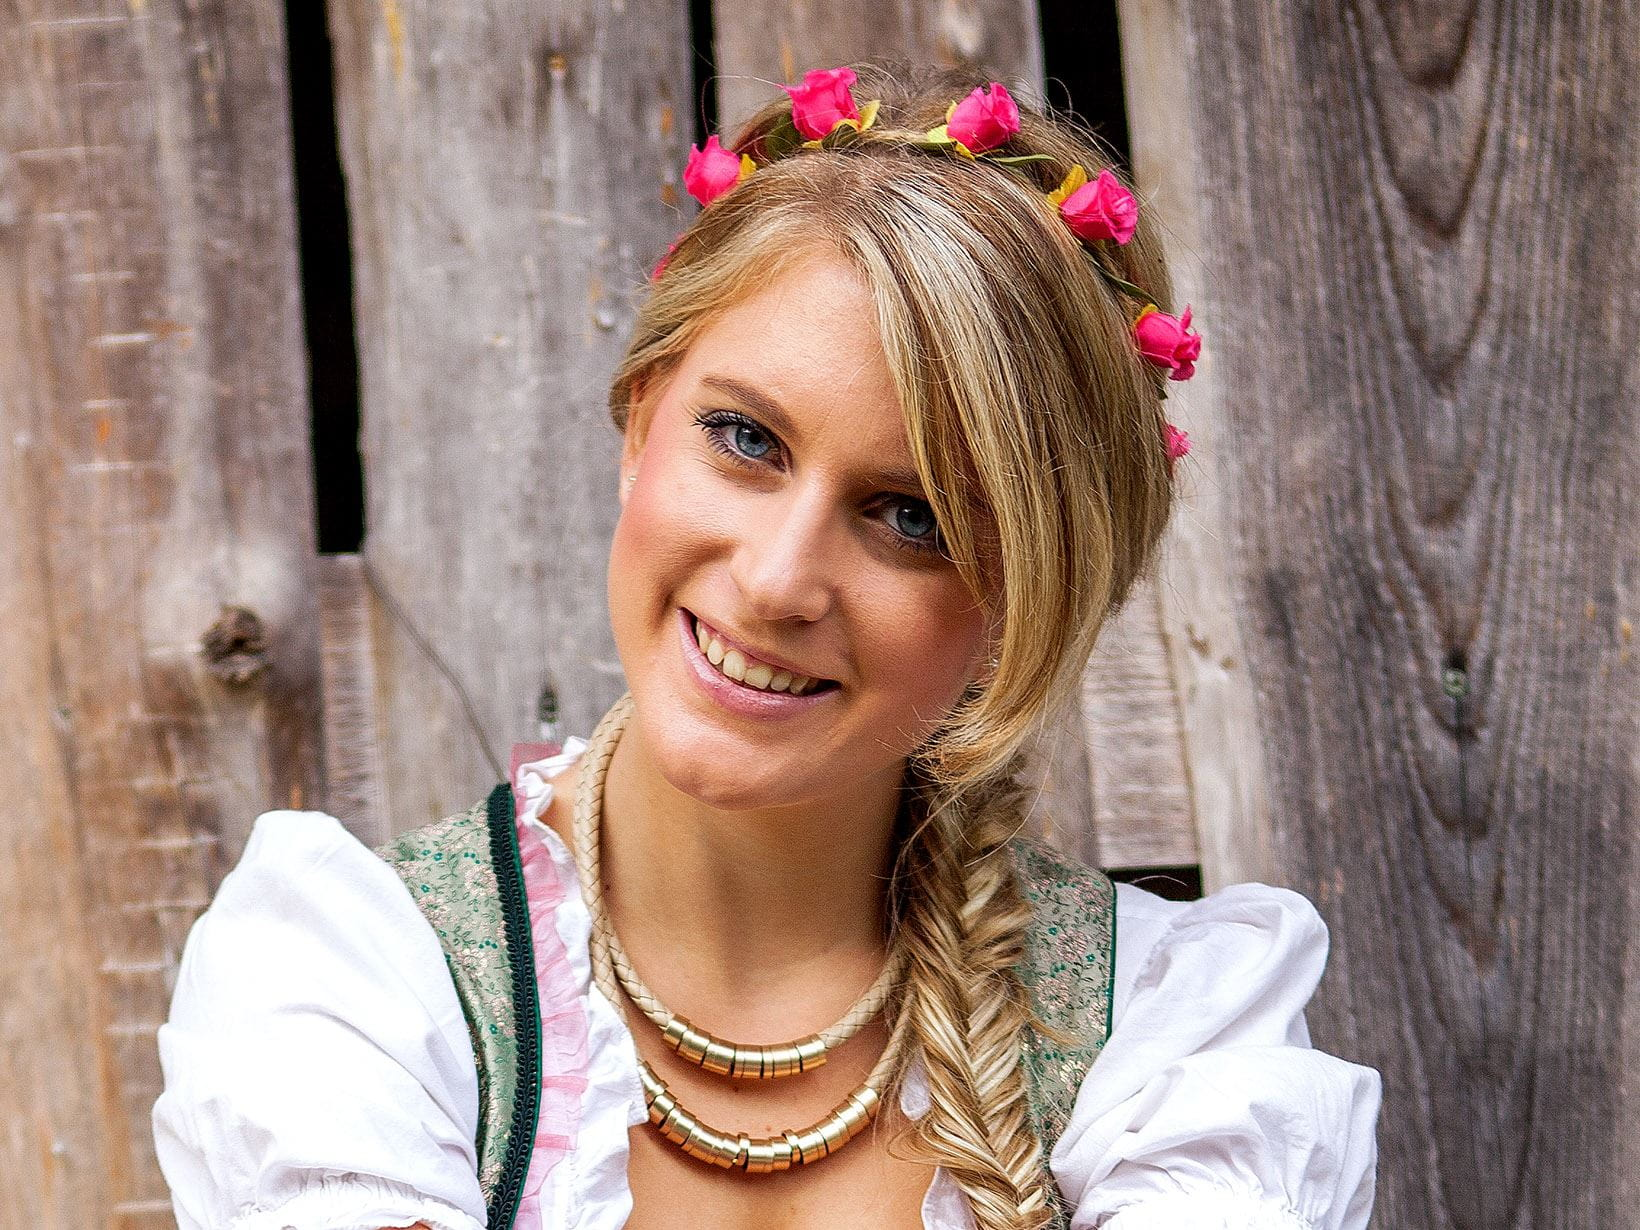 frisuren zum dirndl die besten looks f rs oktoberfest. Black Bedroom Furniture Sets. Home Design Ideas